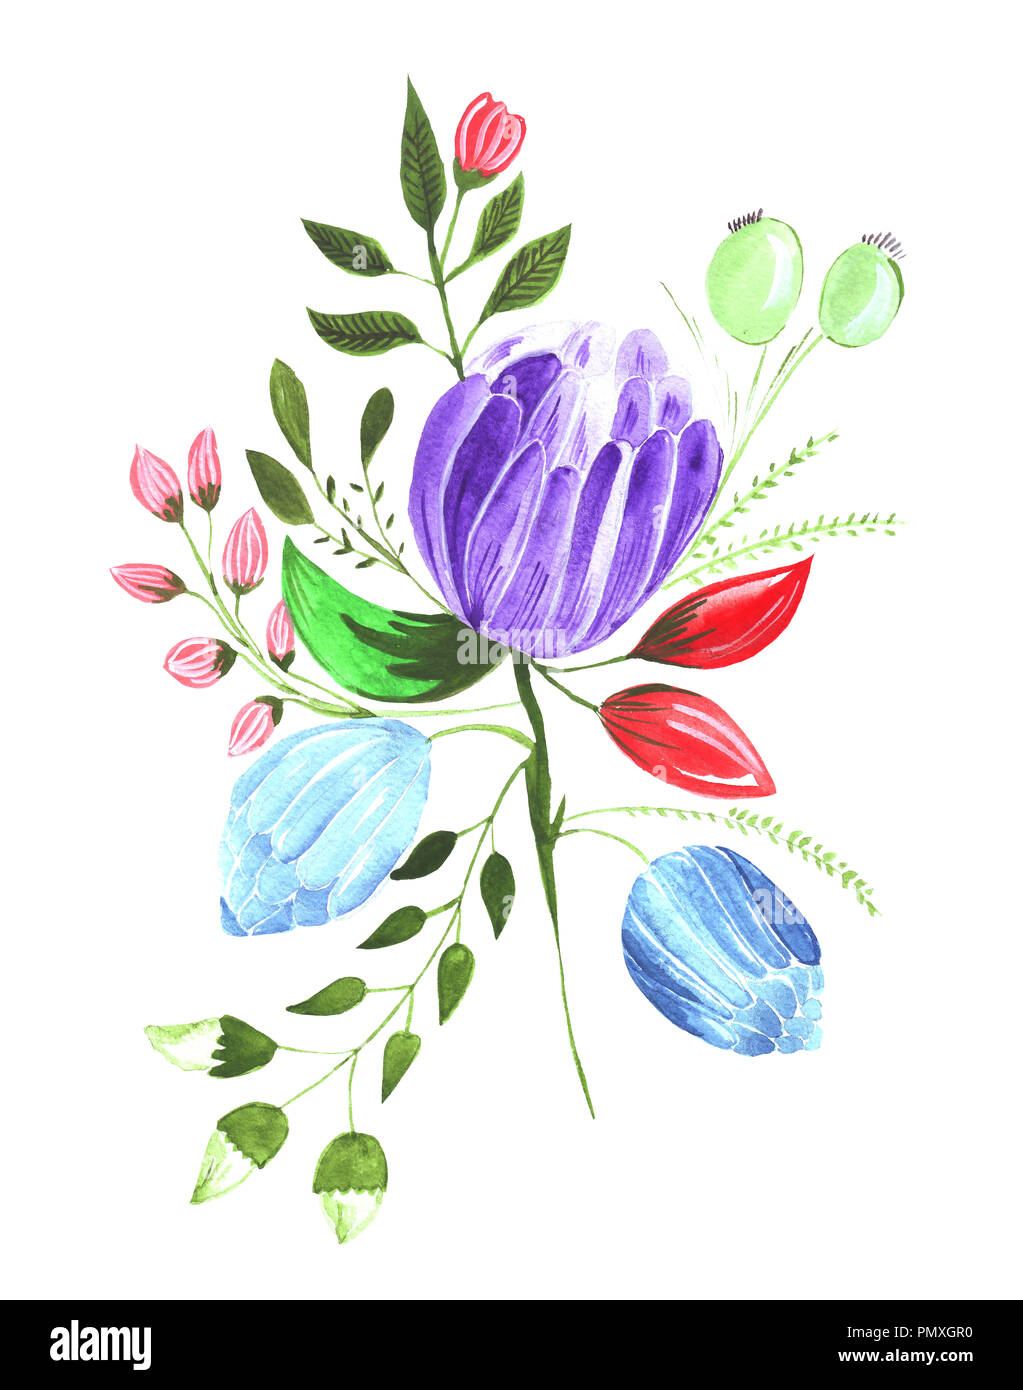 Pencil Drawing Flowers Cut Out Stock Images Pictures Alamy